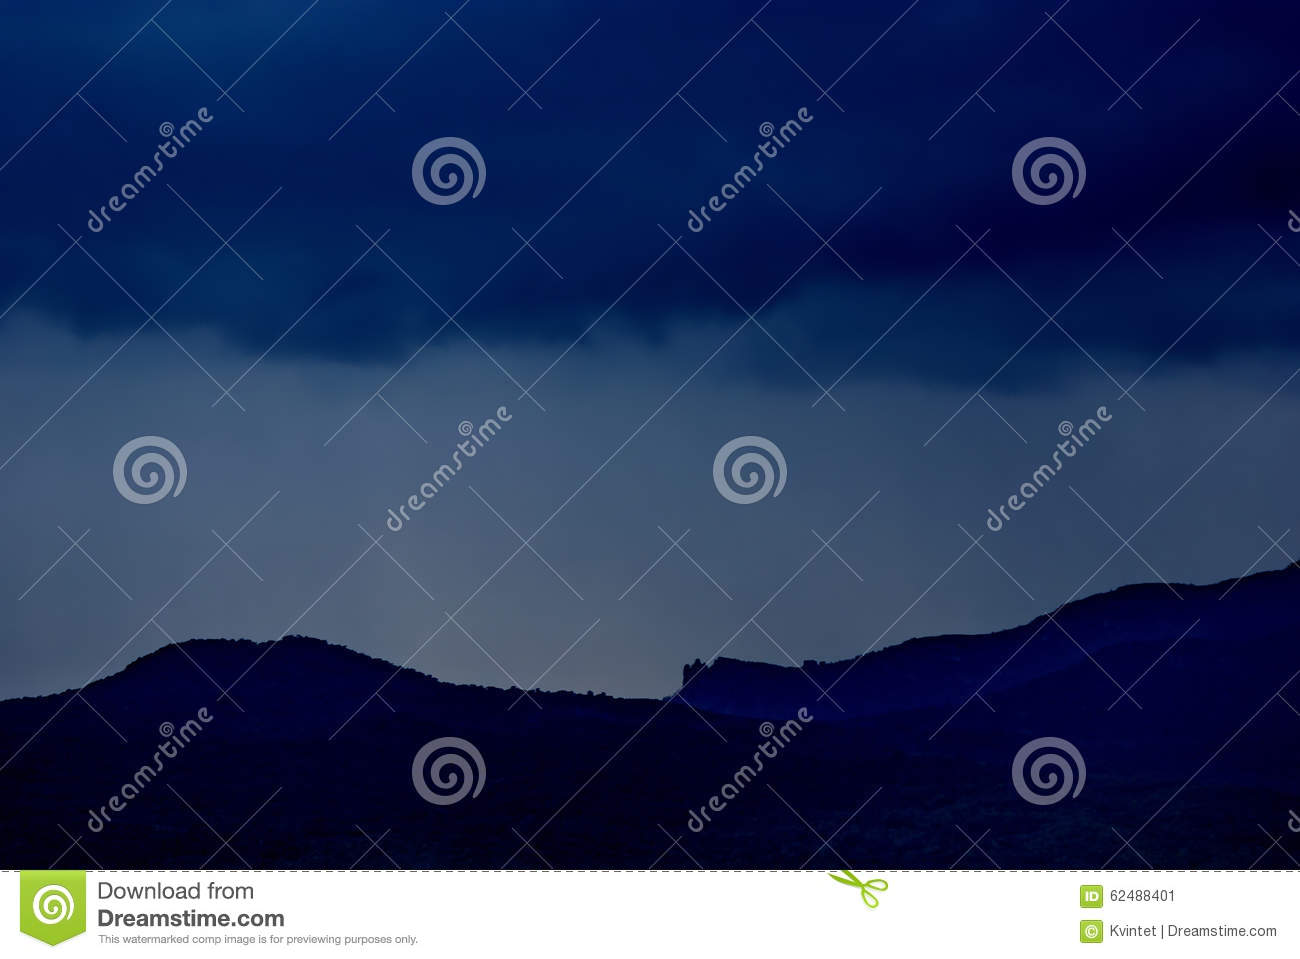 Abstract dark blue background nature with a silhouette of the mountains and the rain clouds